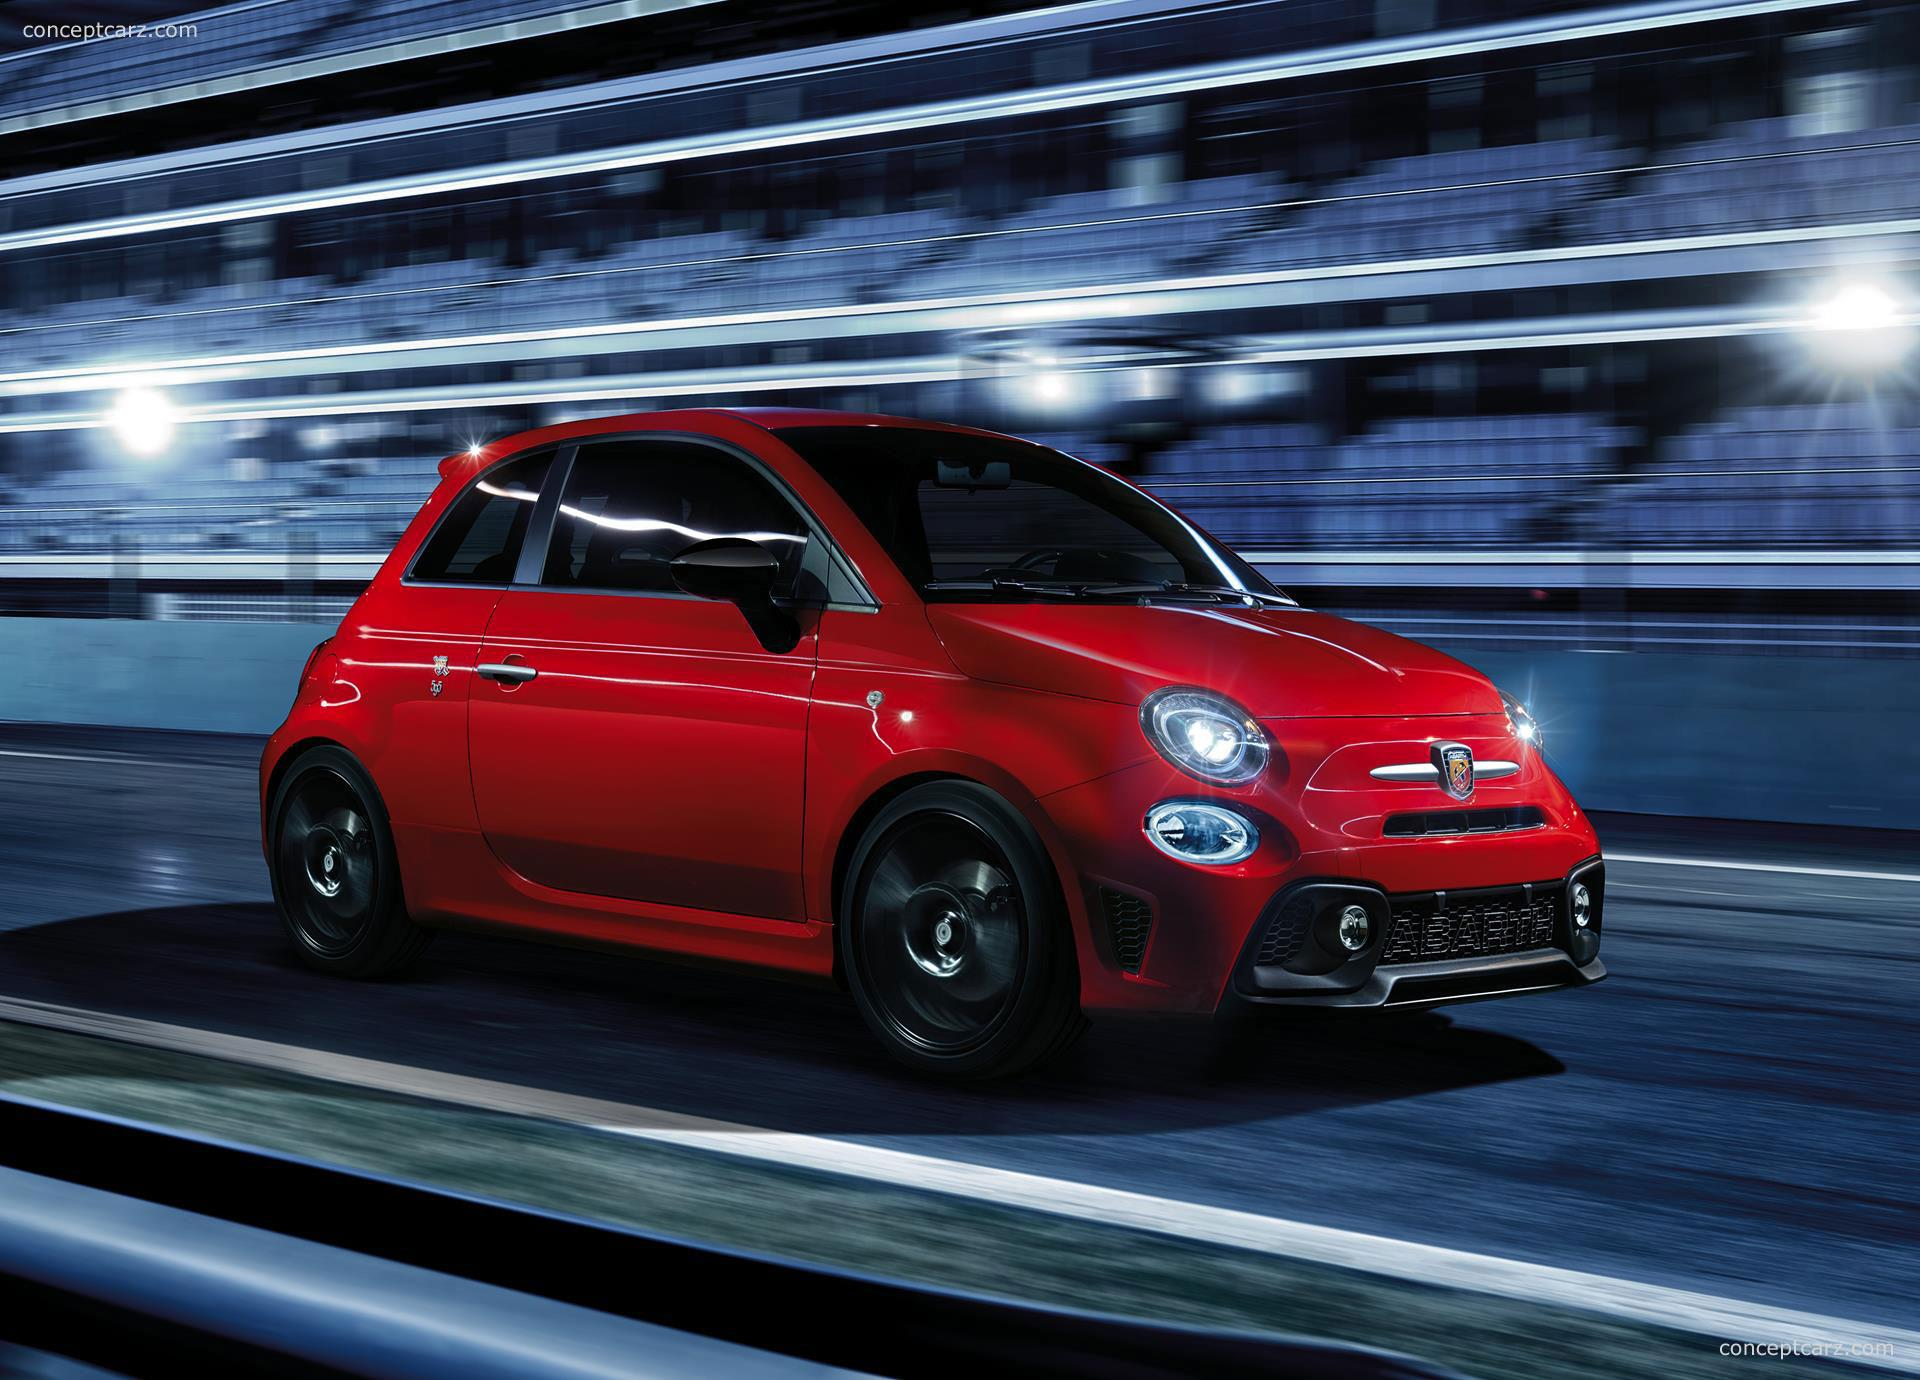 2017 Abarth 595 Pista Technical and Mechanical Specifications